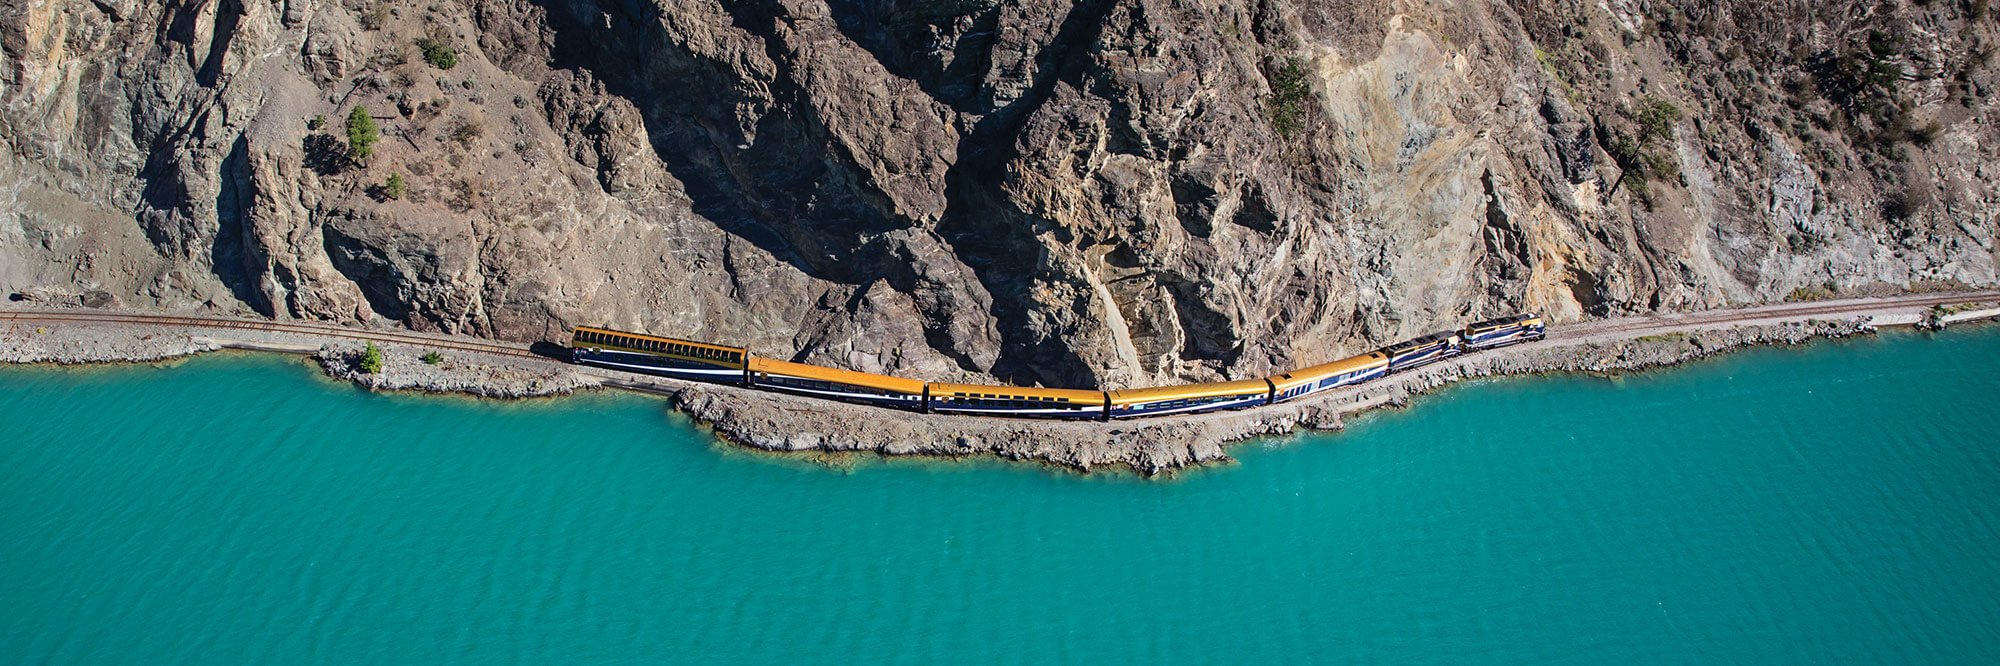 Rocky Mountaineer Train, Seton Lake, BC